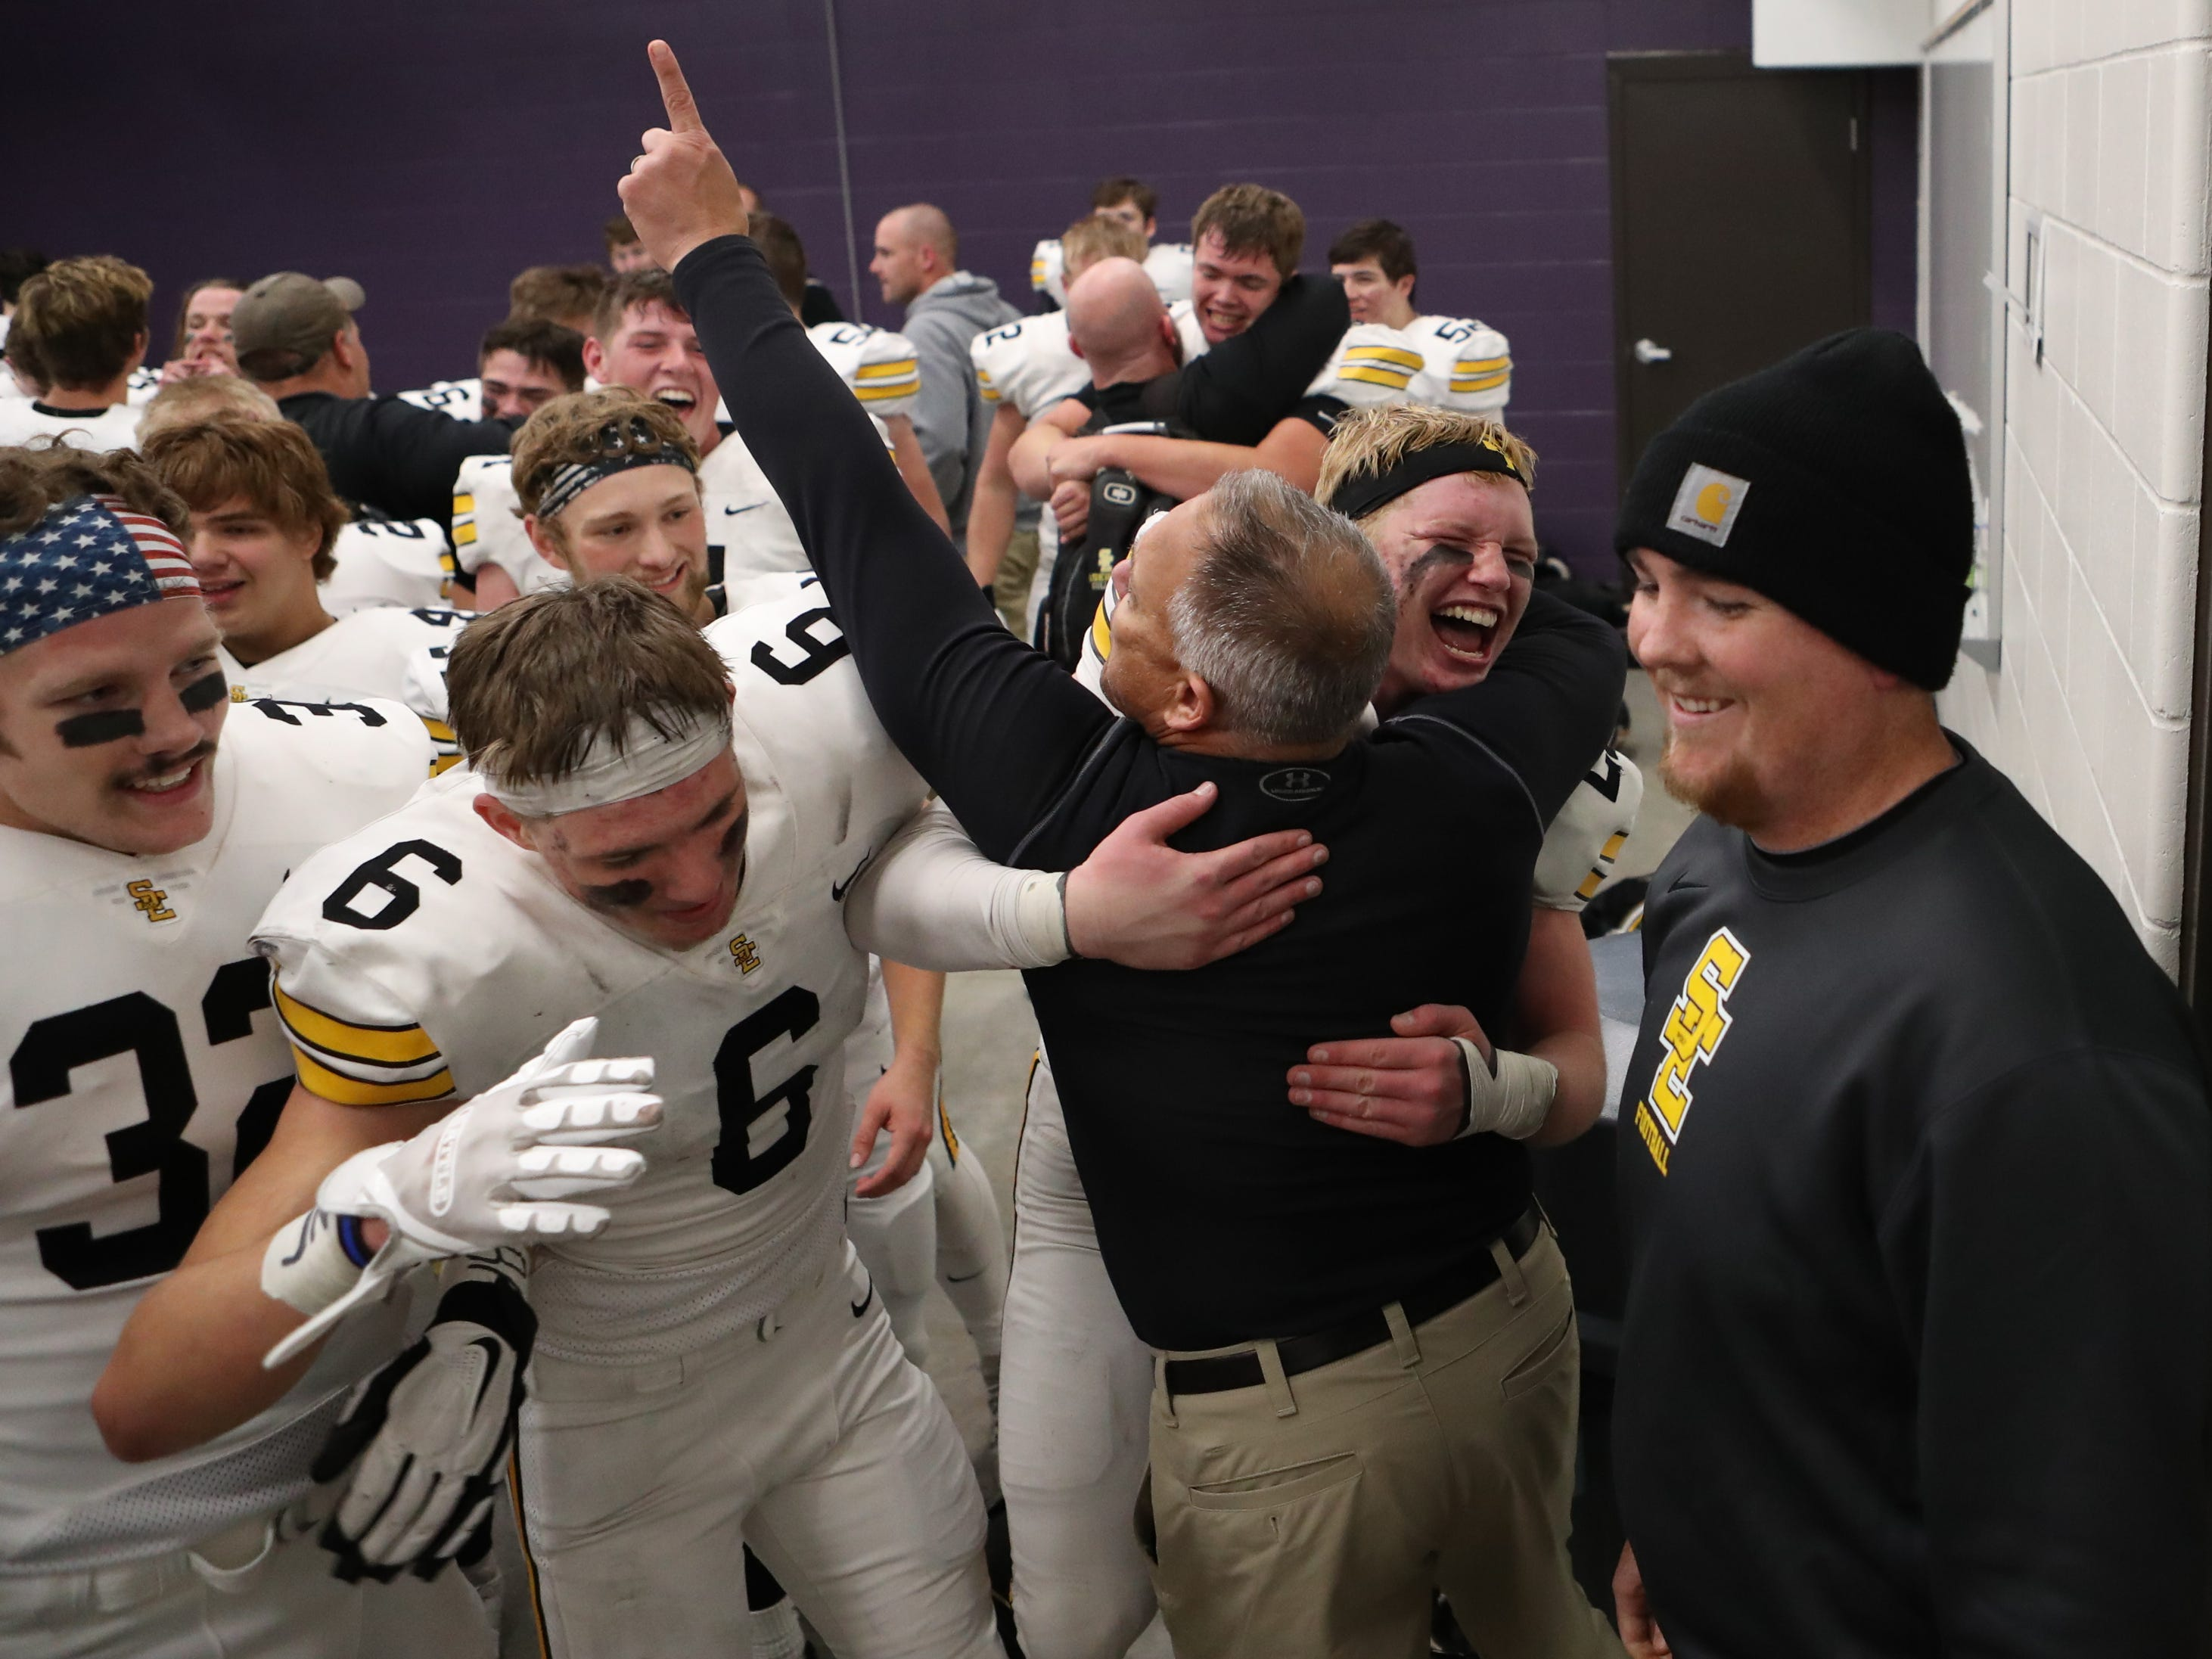 Nov 2, 2018; Johnston, IA, USA; Southeast Polk Rams coach Mark Martin celebrates with the defense after their win against the Dragons at Johnston Stadium. The Rams beat the Dragons 21-7.